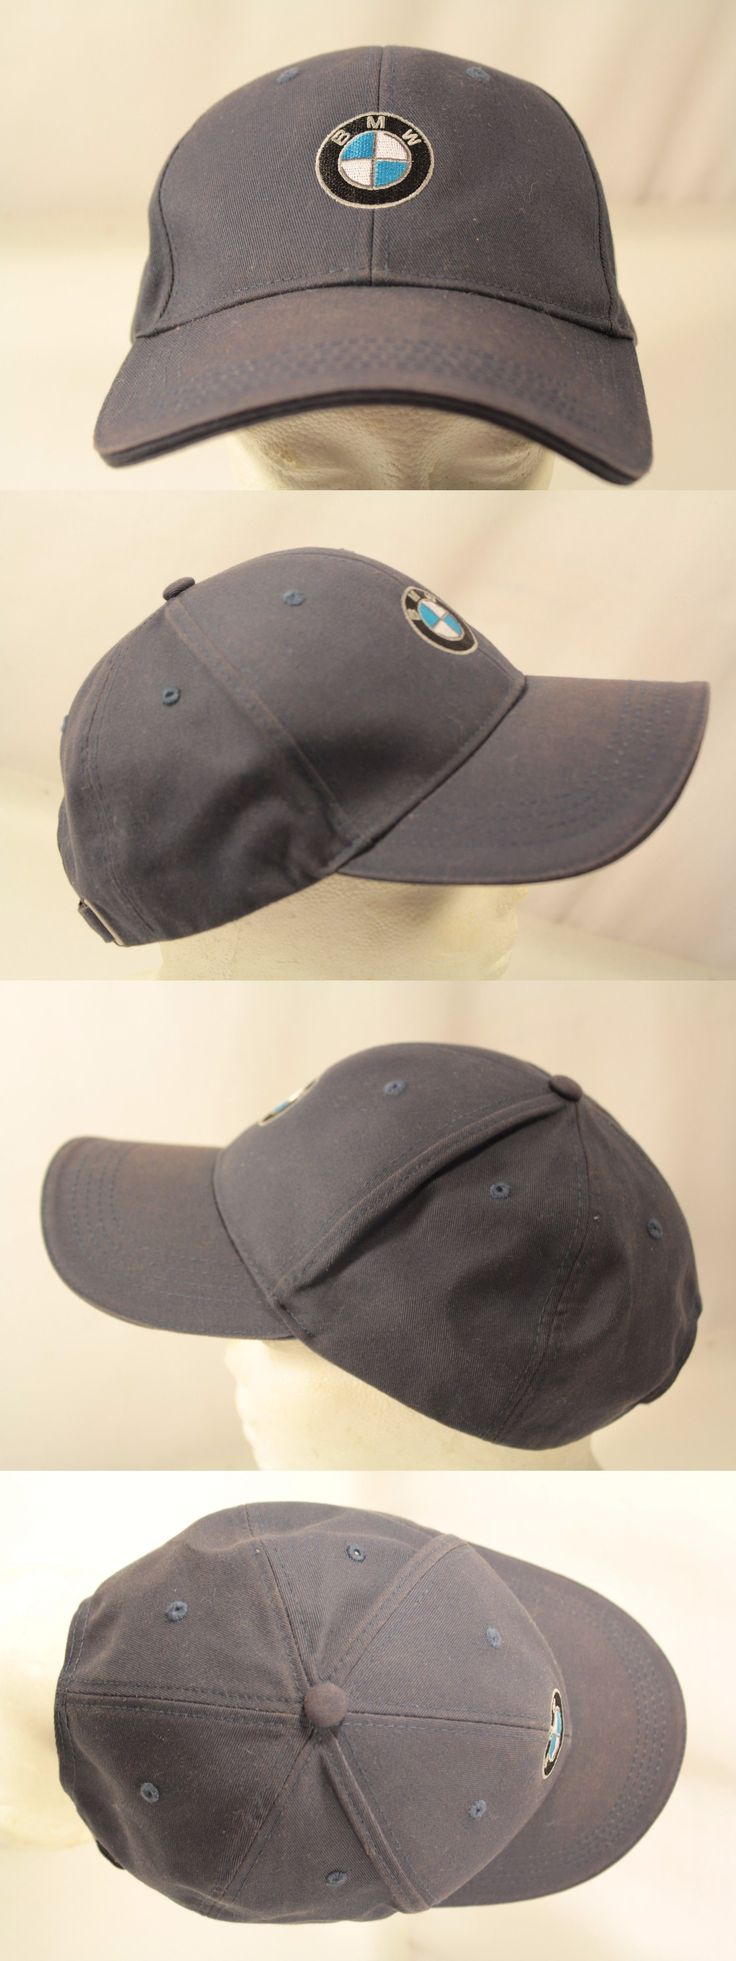 Luxury Cars: Bmw Cap Bavarian Motor Works Hat Strapback Hipster Luxury Car -> BUY IT NOW ONLY: $14.99 on eBay!